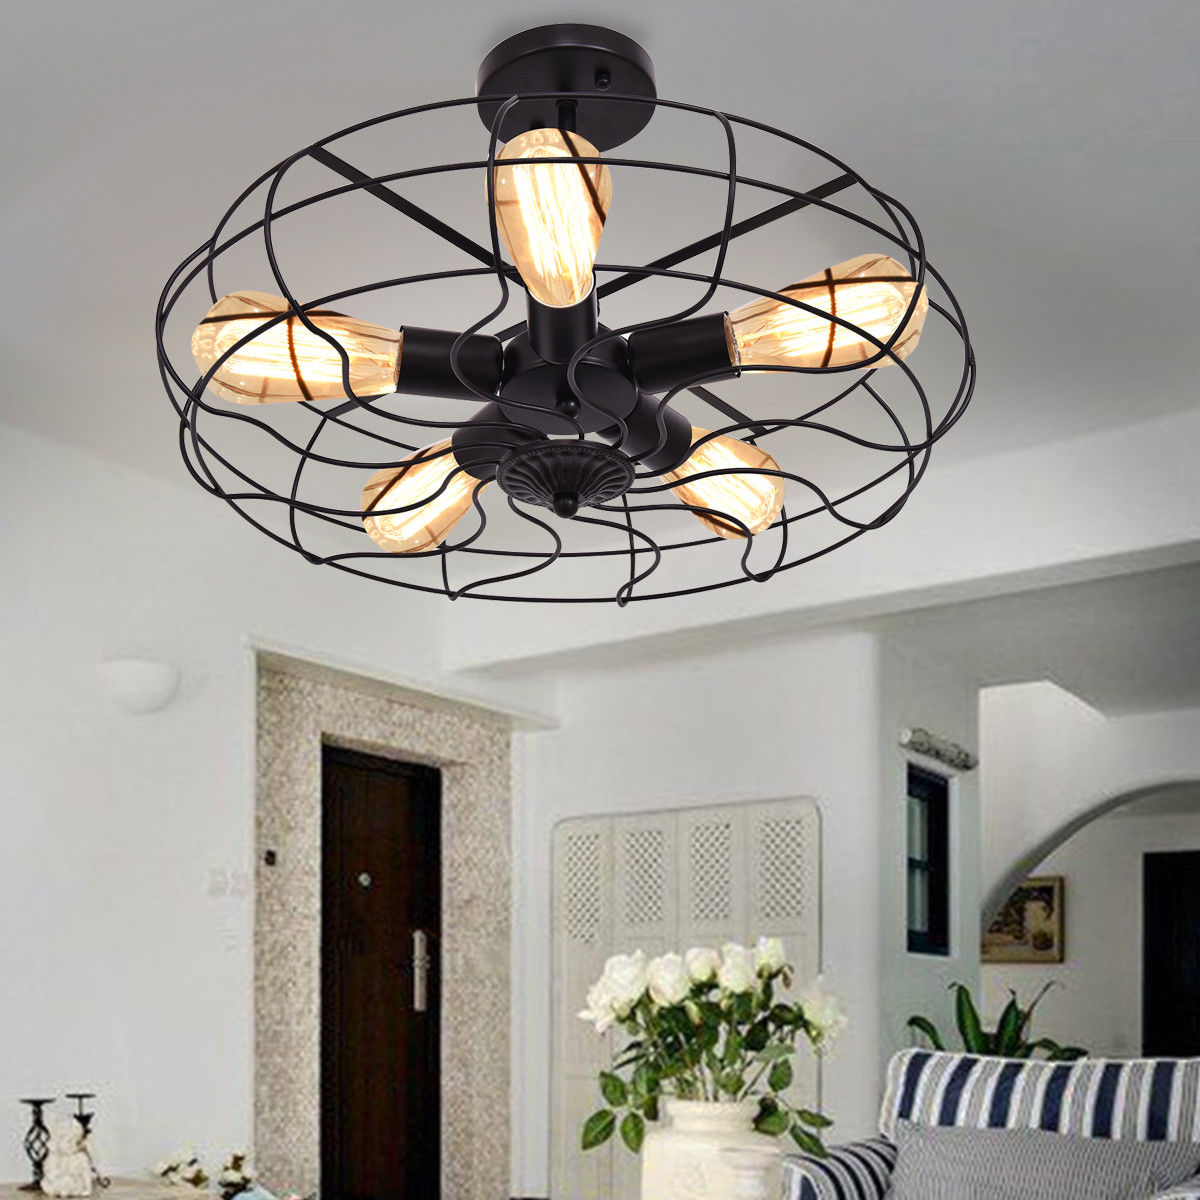 Gymax Industrial Vintage Semi Flush Mount Ceiling Light Metal Hanging Fixture 5-Light